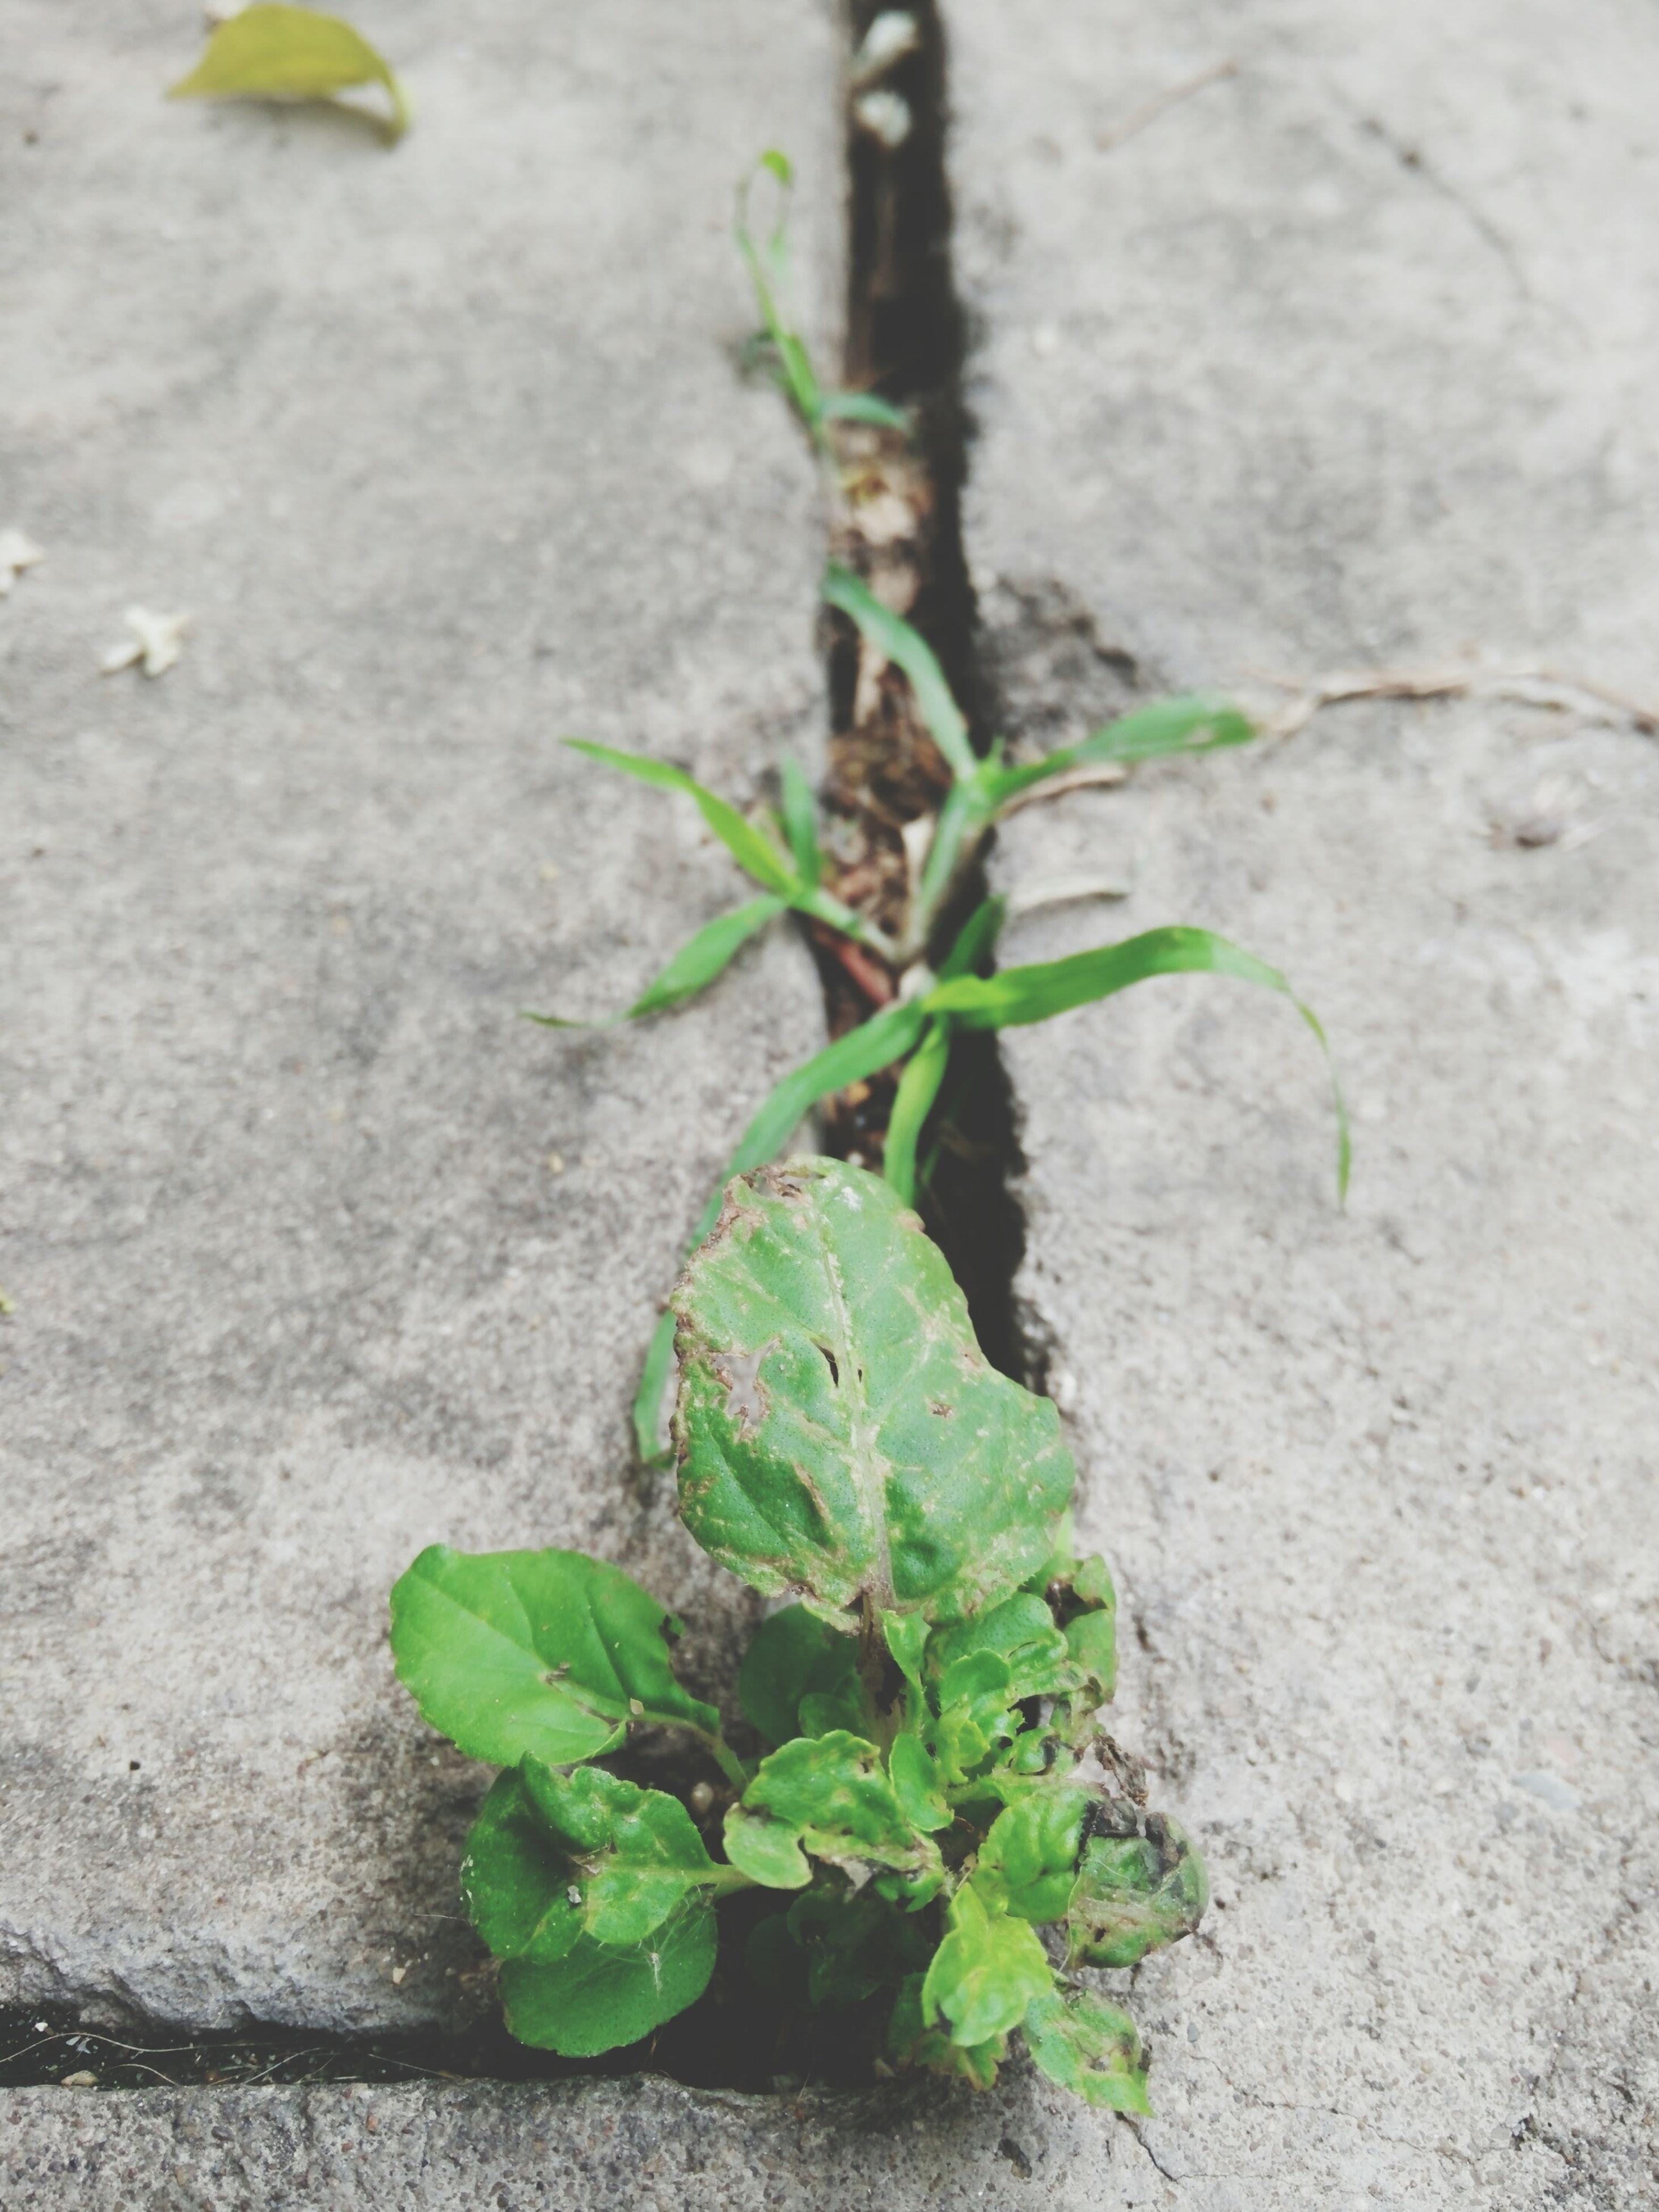 leaf, plant, growth, green color, wall - building feature, close-up, growing, nature, textured, high angle view, day, outdoors, ivy, no people, wall, green, built structure, potted plant, fragility, freshness